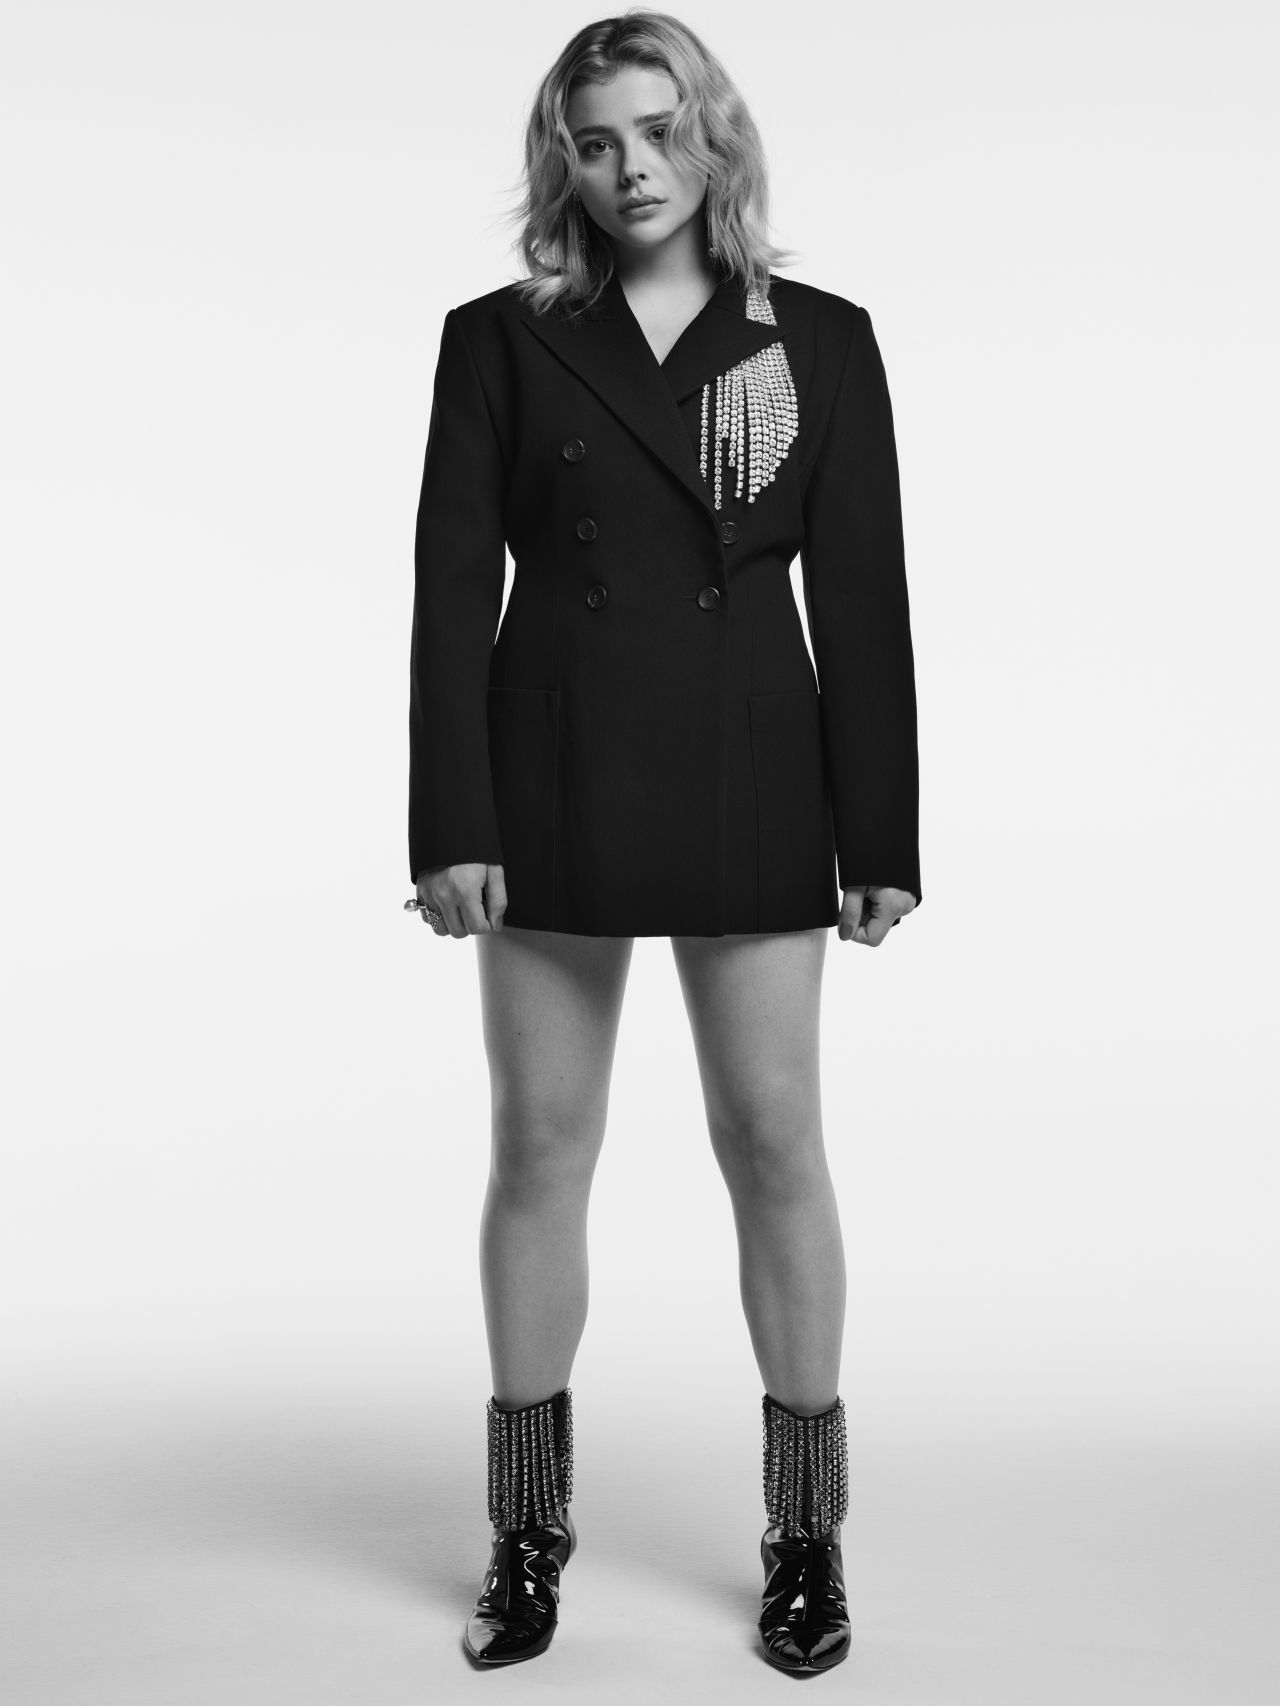 chloe moretz  sunday times photoshoot august